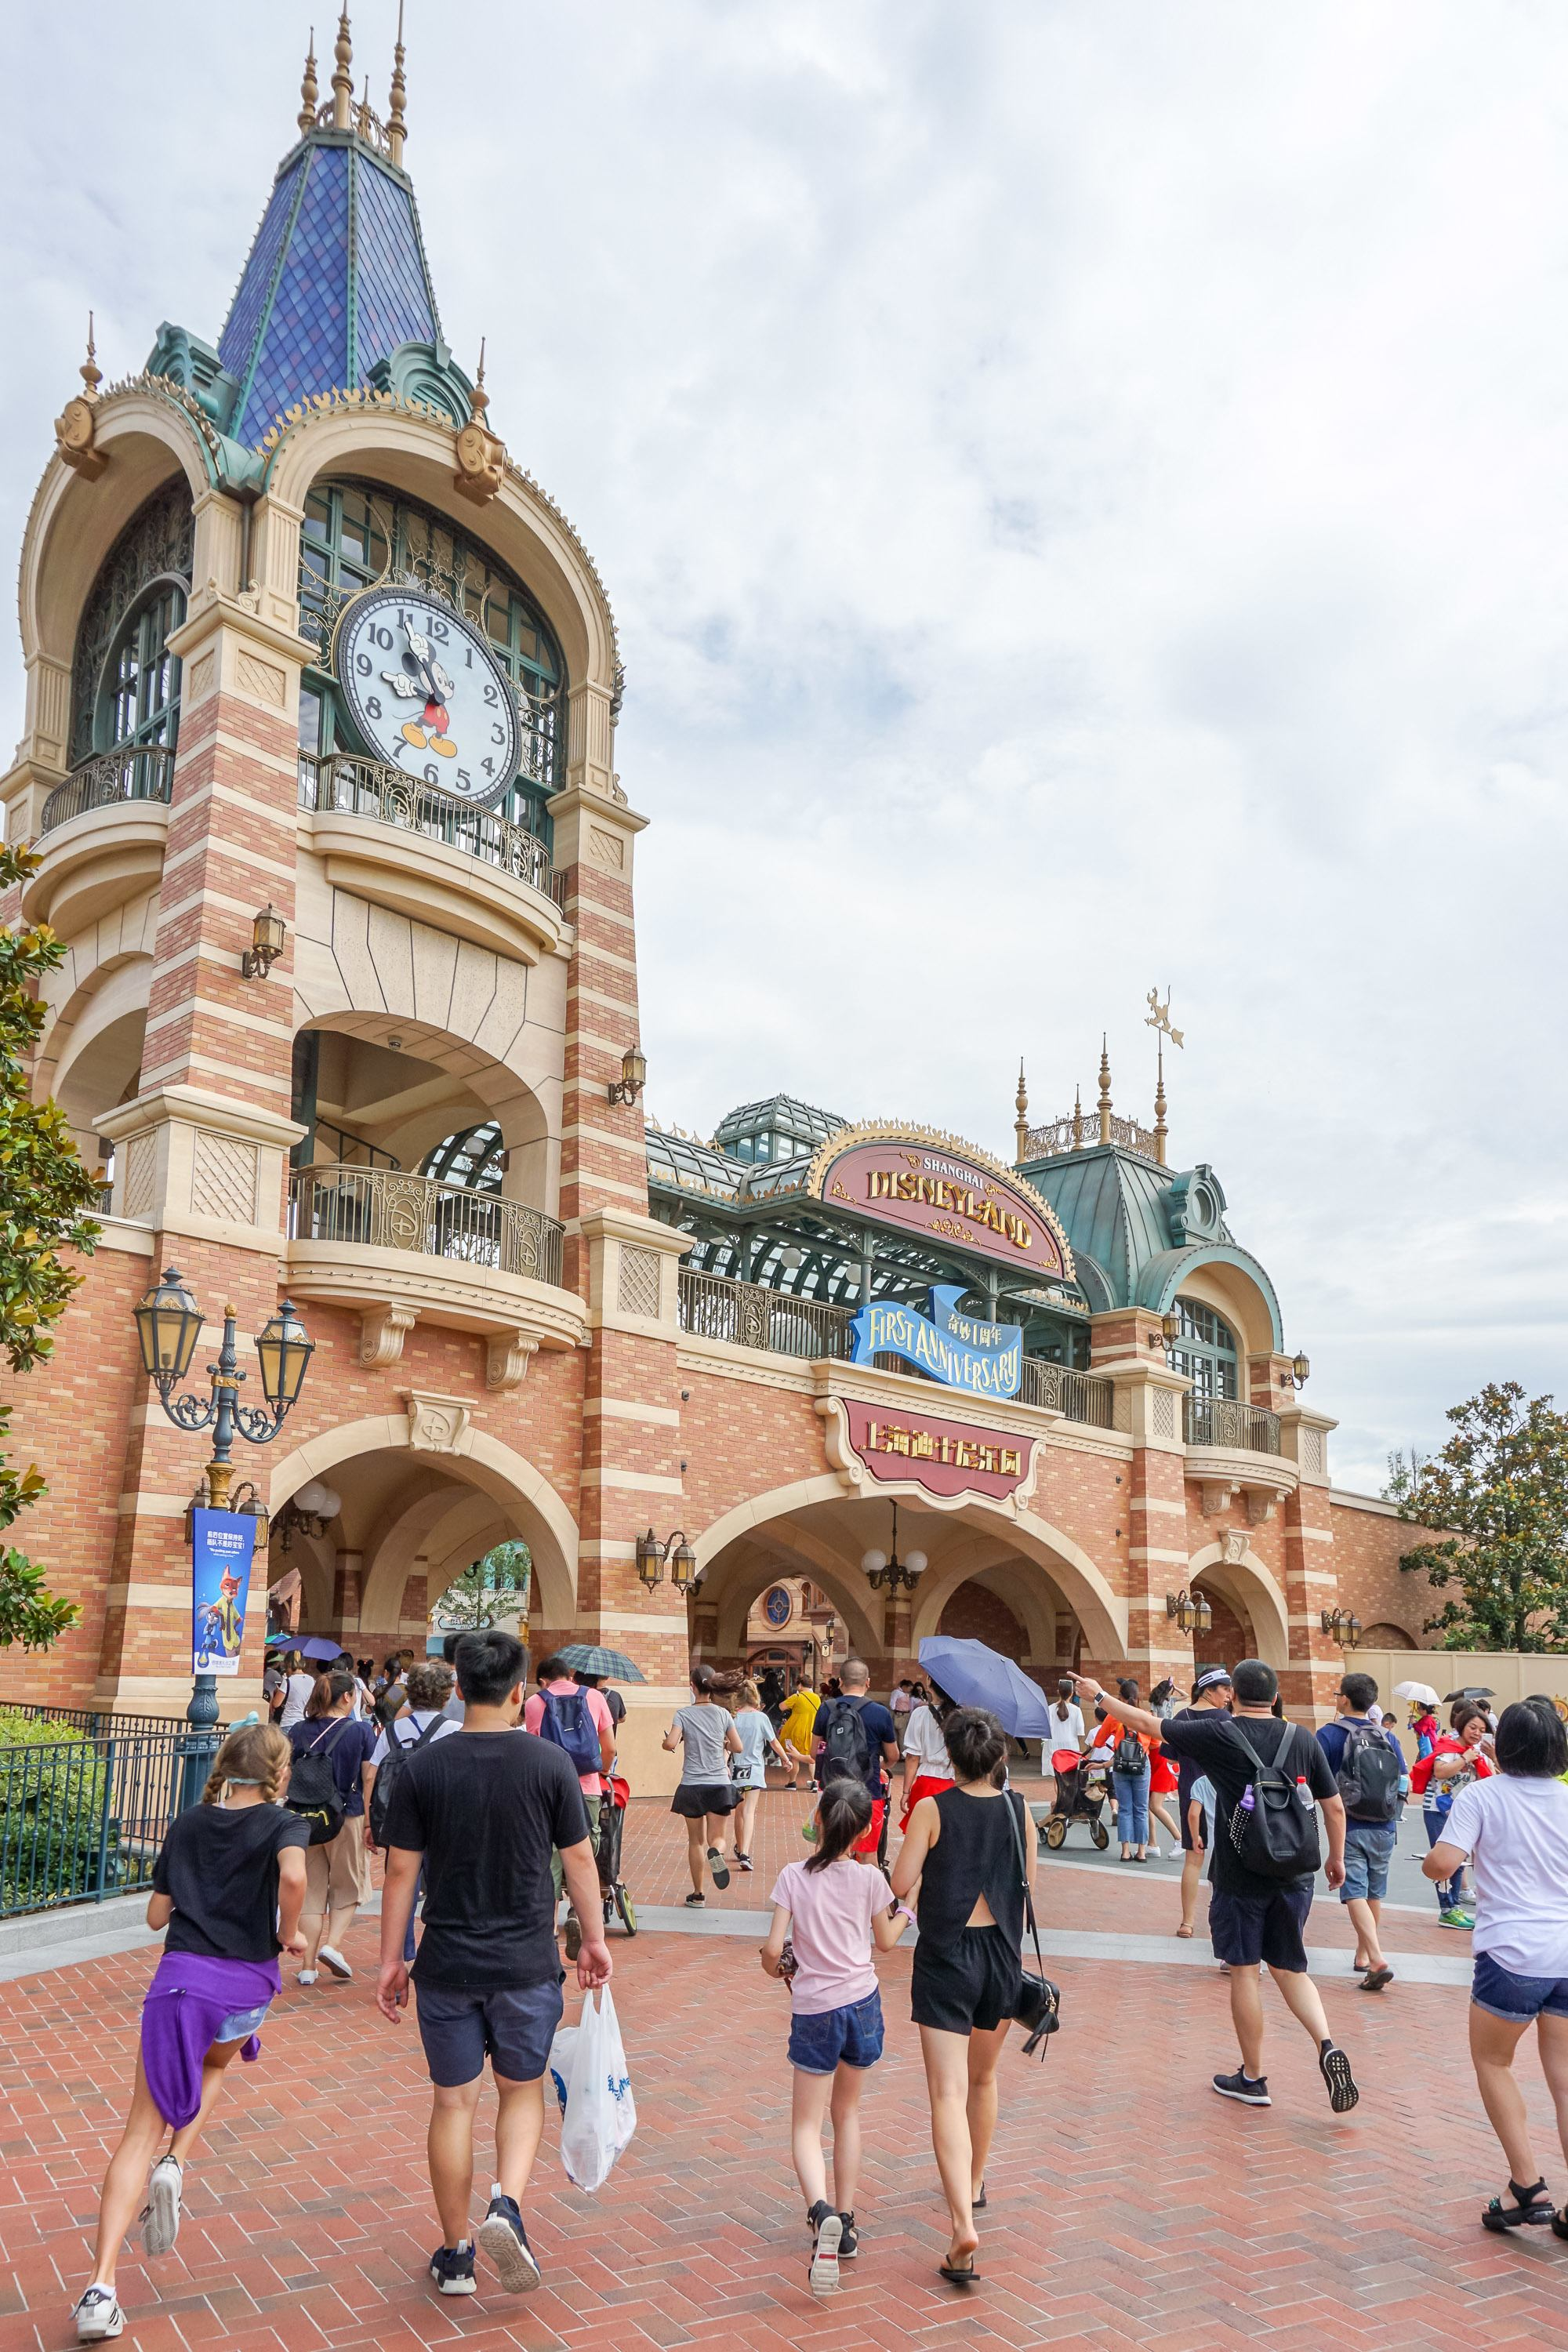 The entrance to Shanghai Disneyland. Learn here how to navigate the crowds, what the rides are like and more.